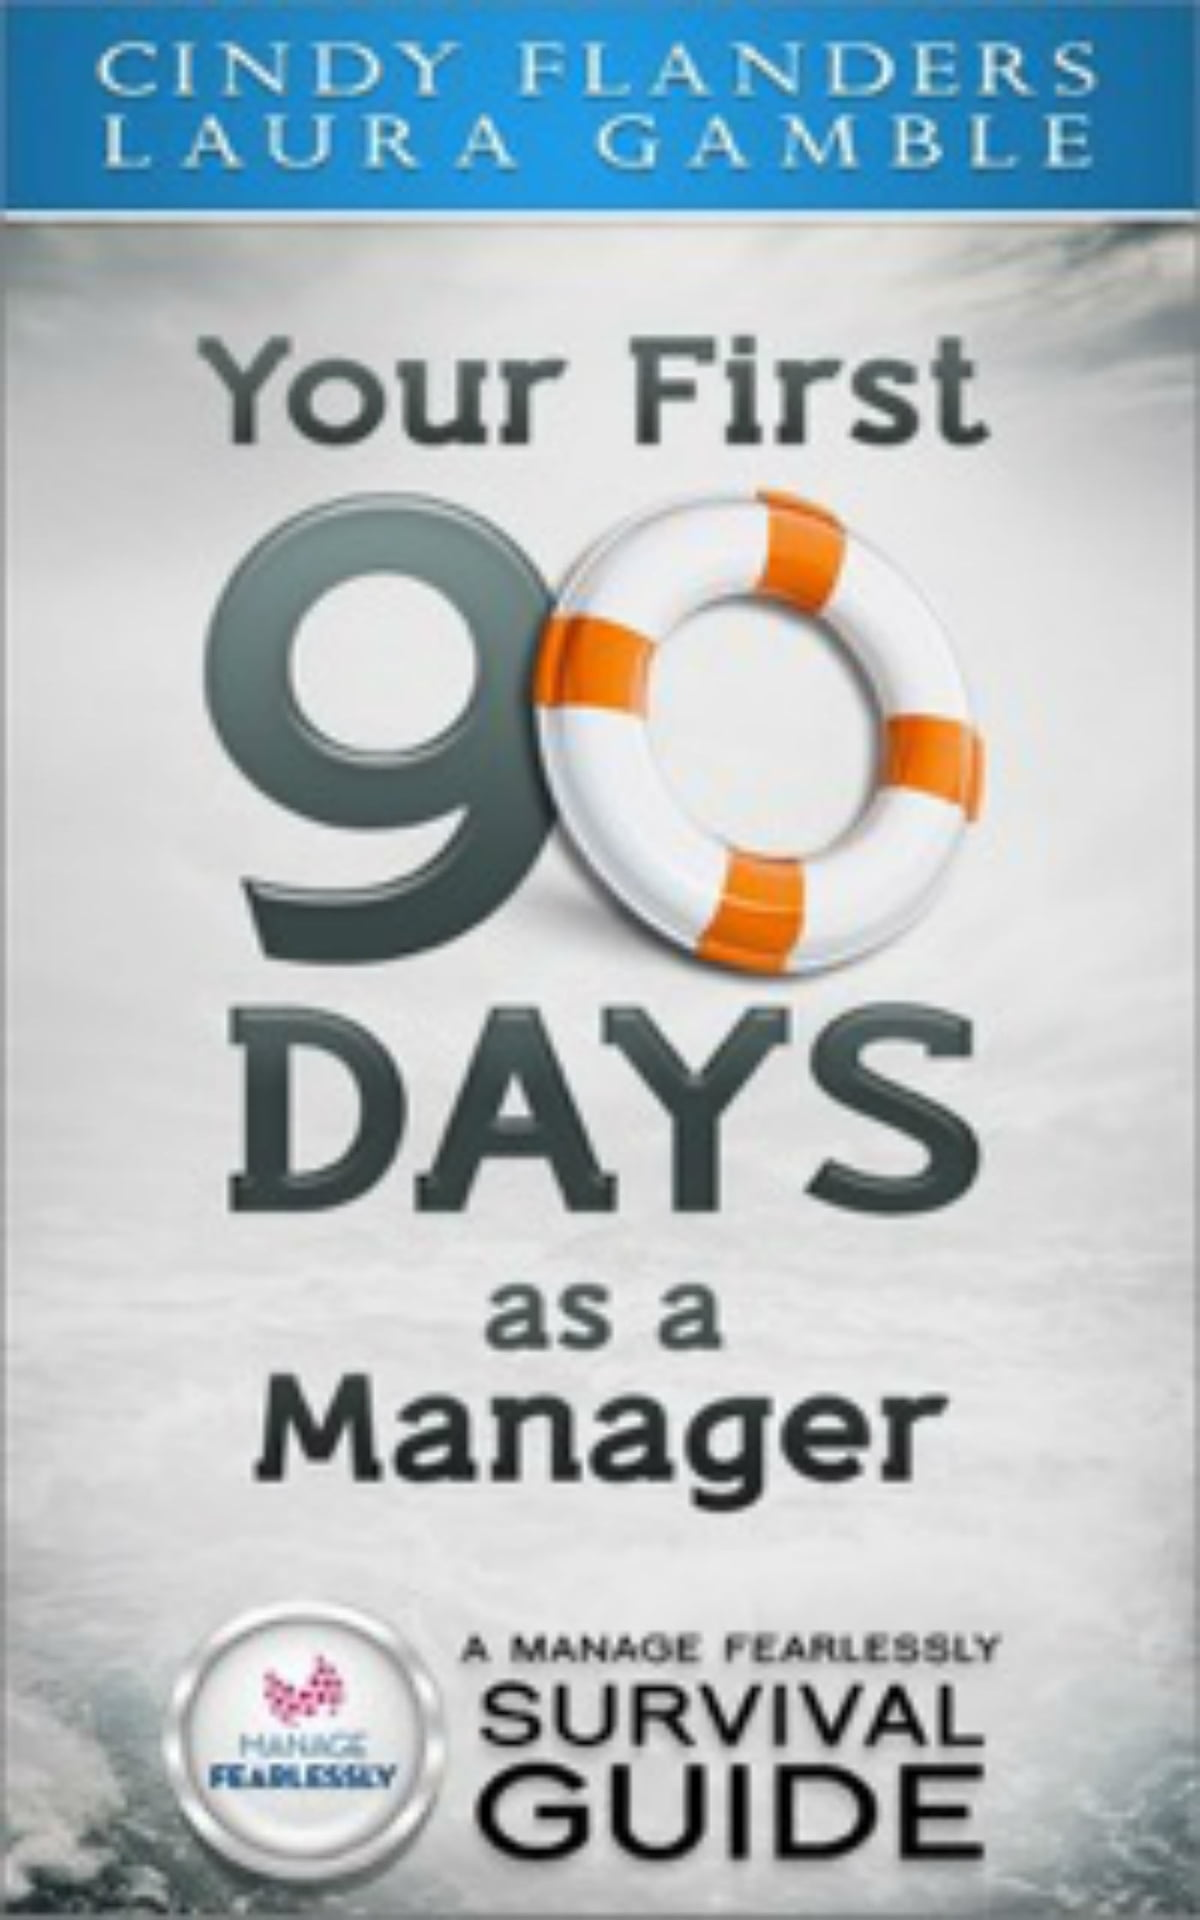 A Manage Fearlessly Survival Guide Your First 90 Days as a Manager by  Cynthia Flanders and Laura Gamble eBook by Cynthia Flanders | Rakuten Kobo